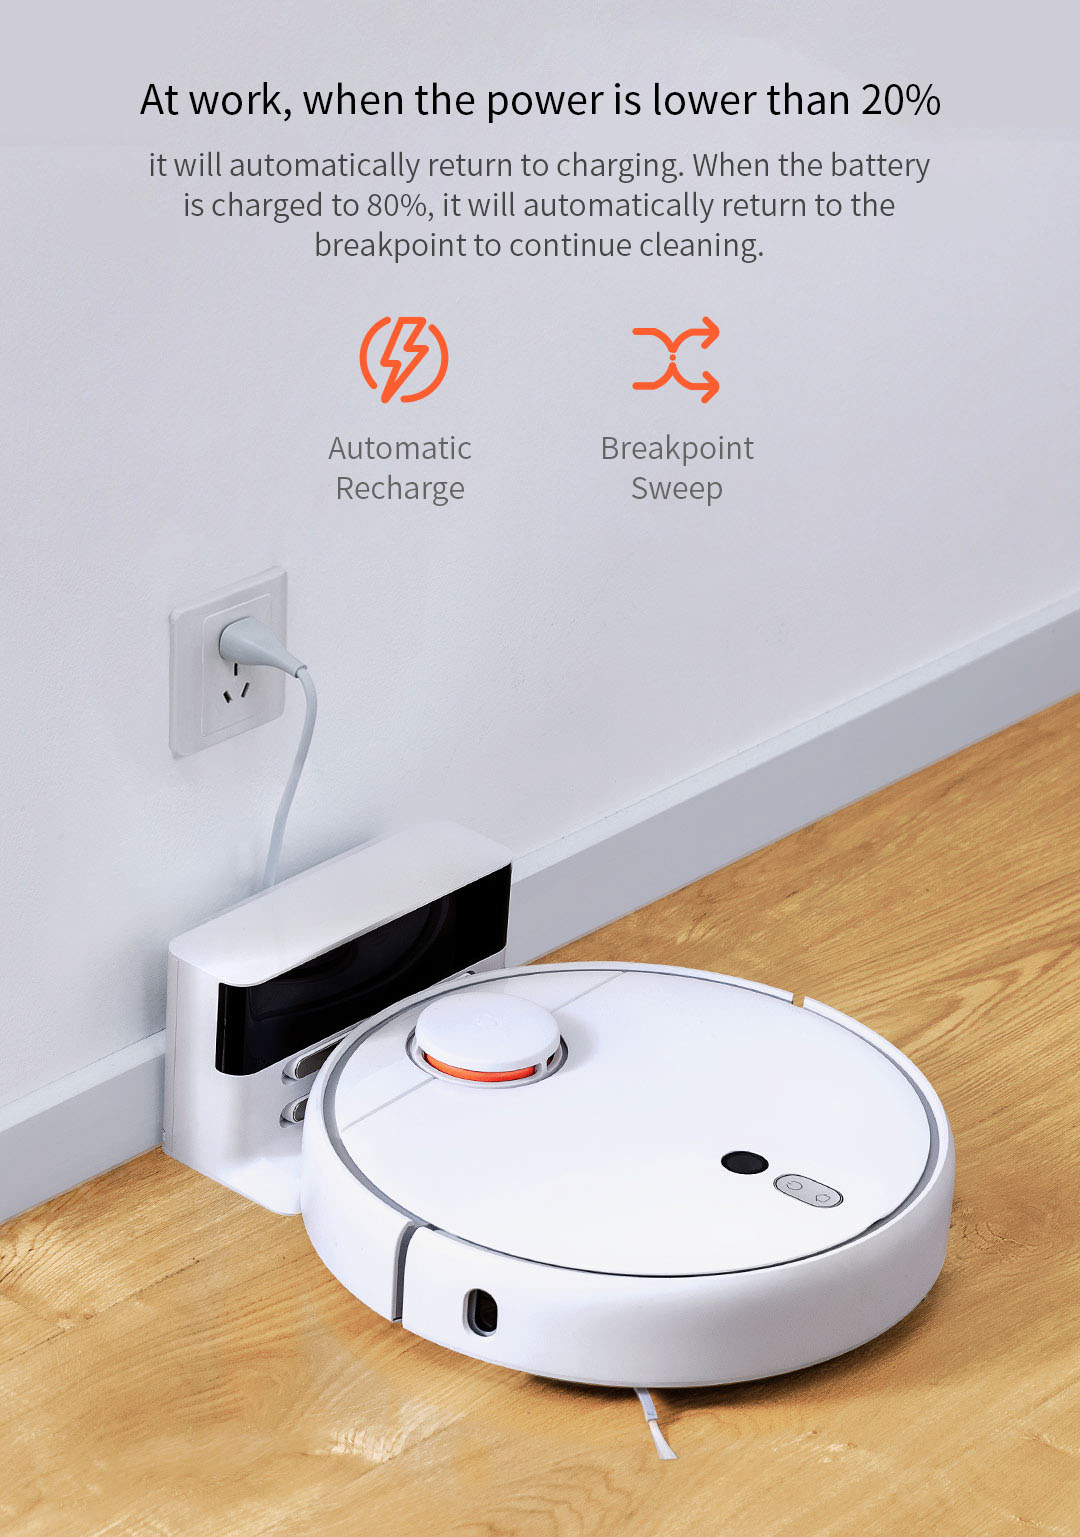 2019 XIAOMI Mijia 1S Robot Vacuum Cleaner AI Intelligent Planning, 5200mAh Battery, 2000Pa Strong Suction, MIJIA APP Control, LDS Laser navigation, Dual SLAM Fusion Algorithm